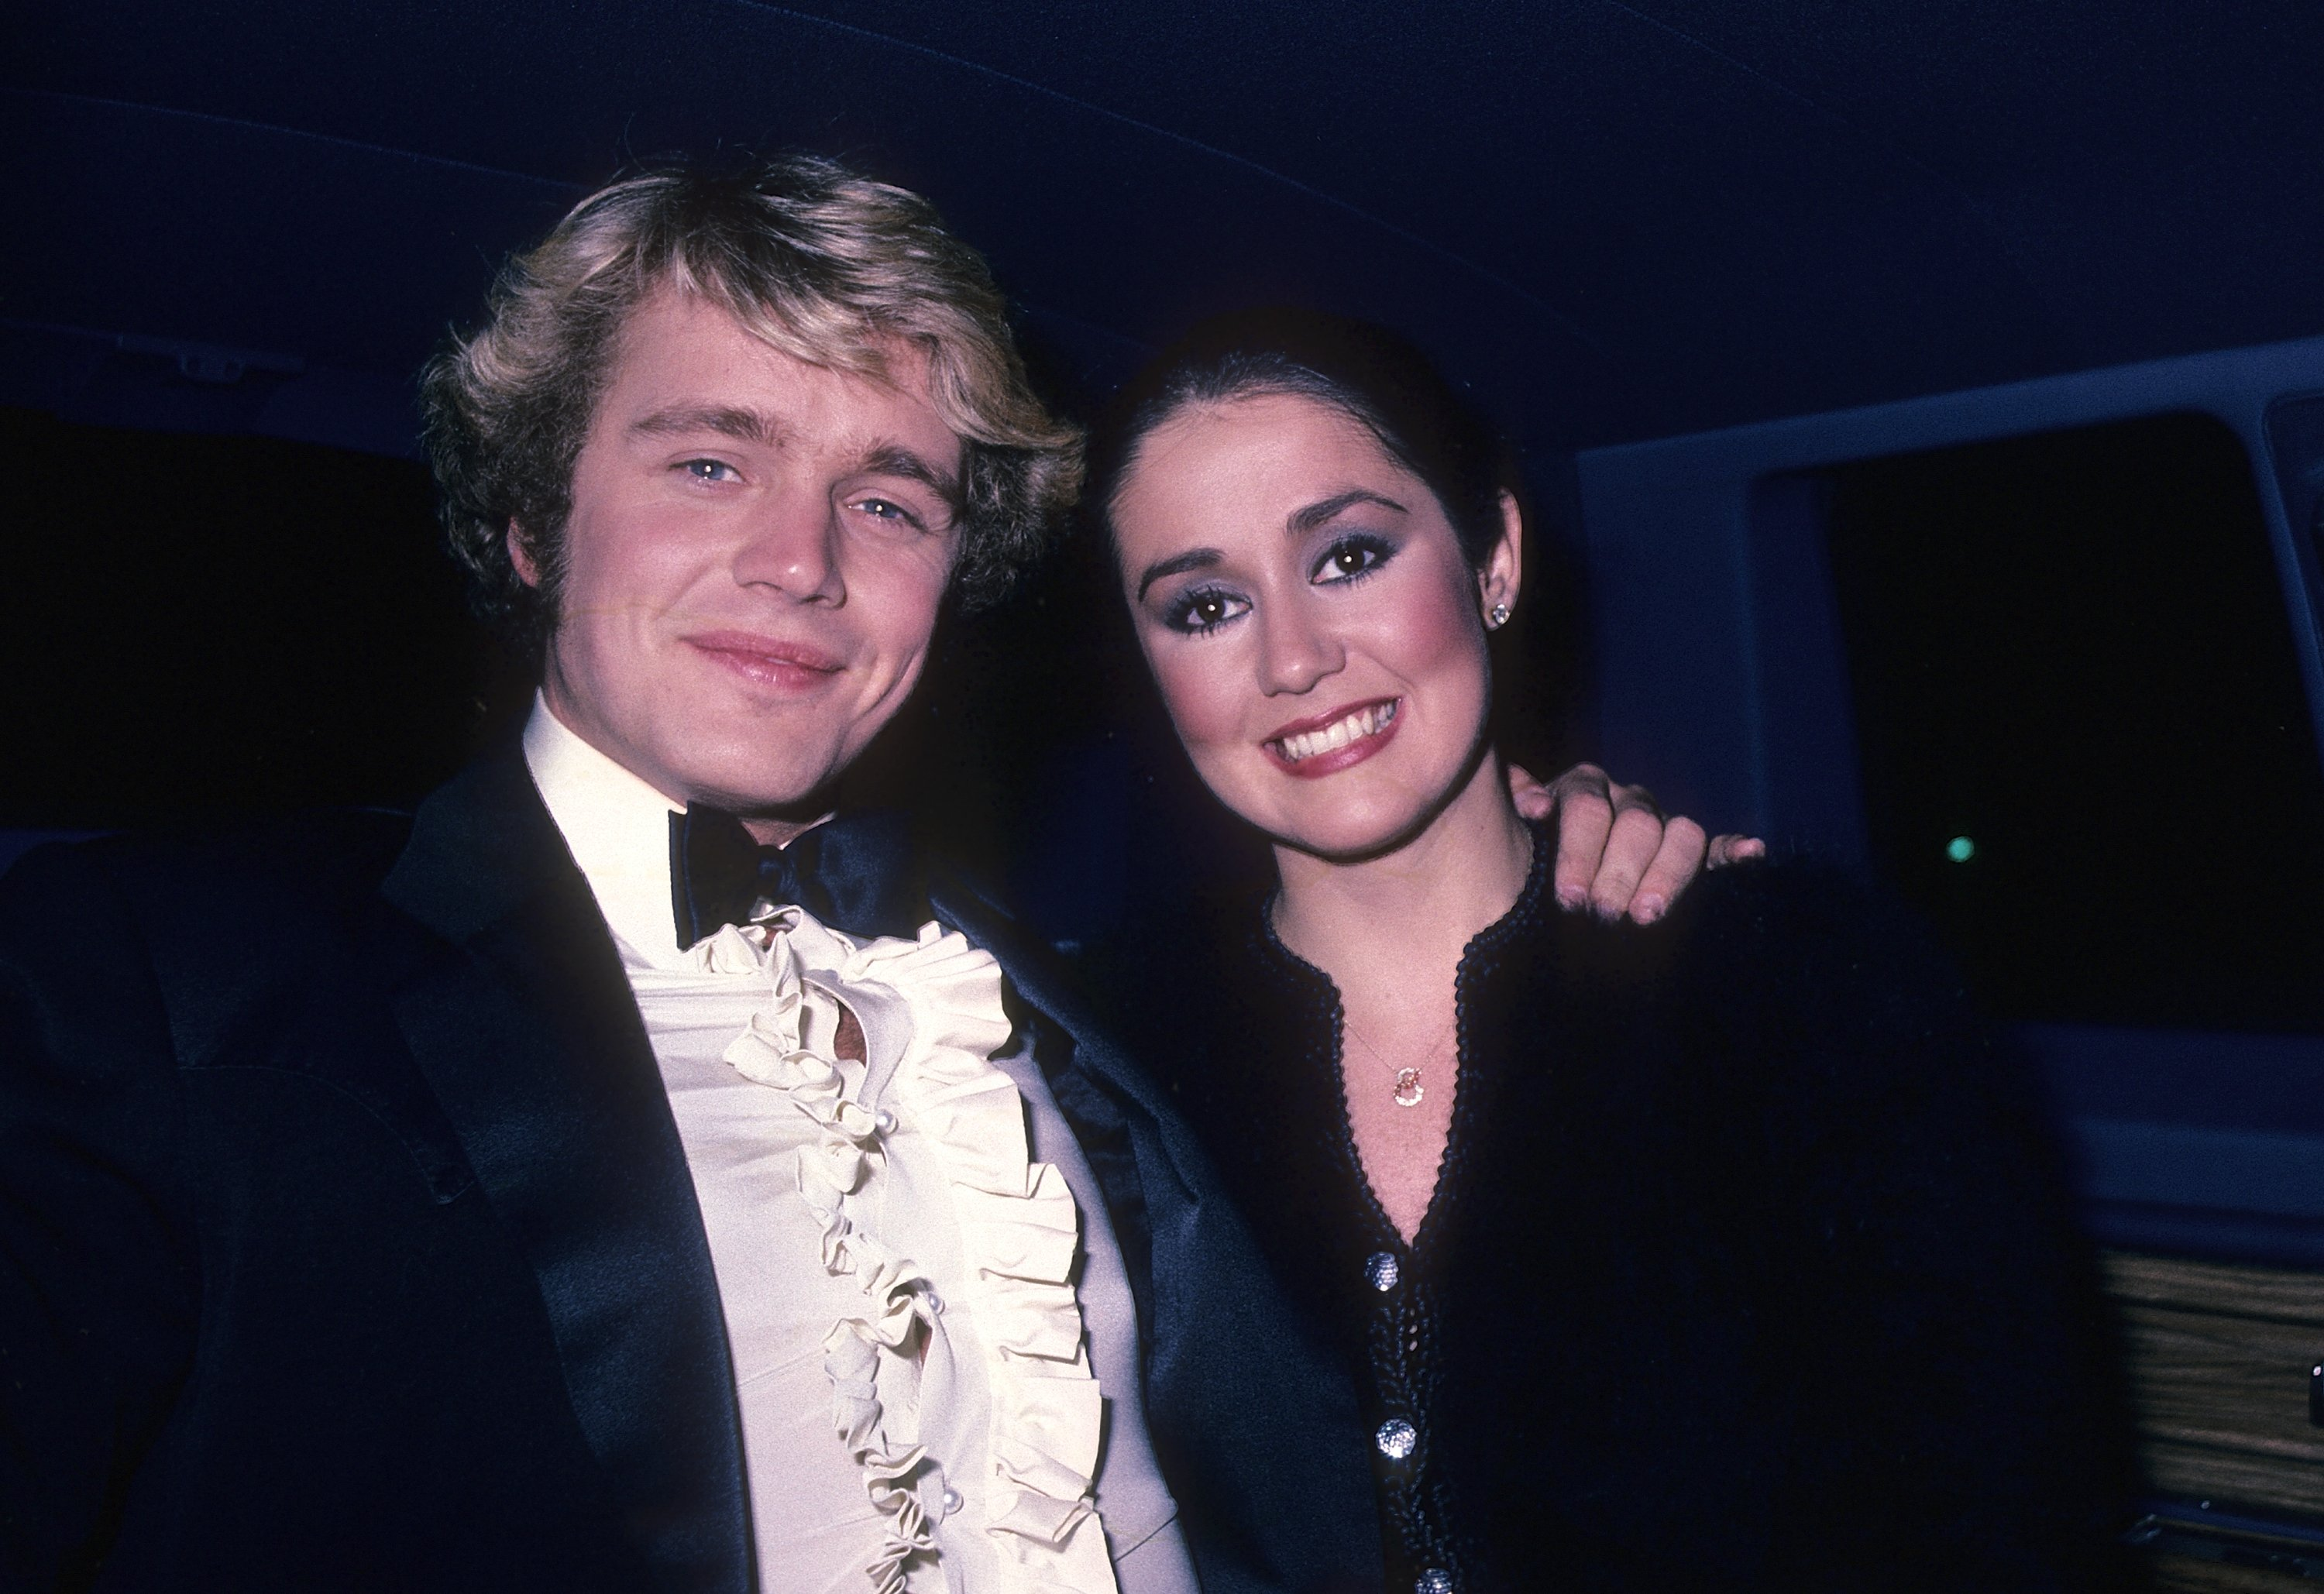 John Schneider and Tawny Little attend the American Video Association's First Annual American Video Awards on April 6, 1983 at the Beverly Theatre in Beverly Hills, California | Photo: GettyImages